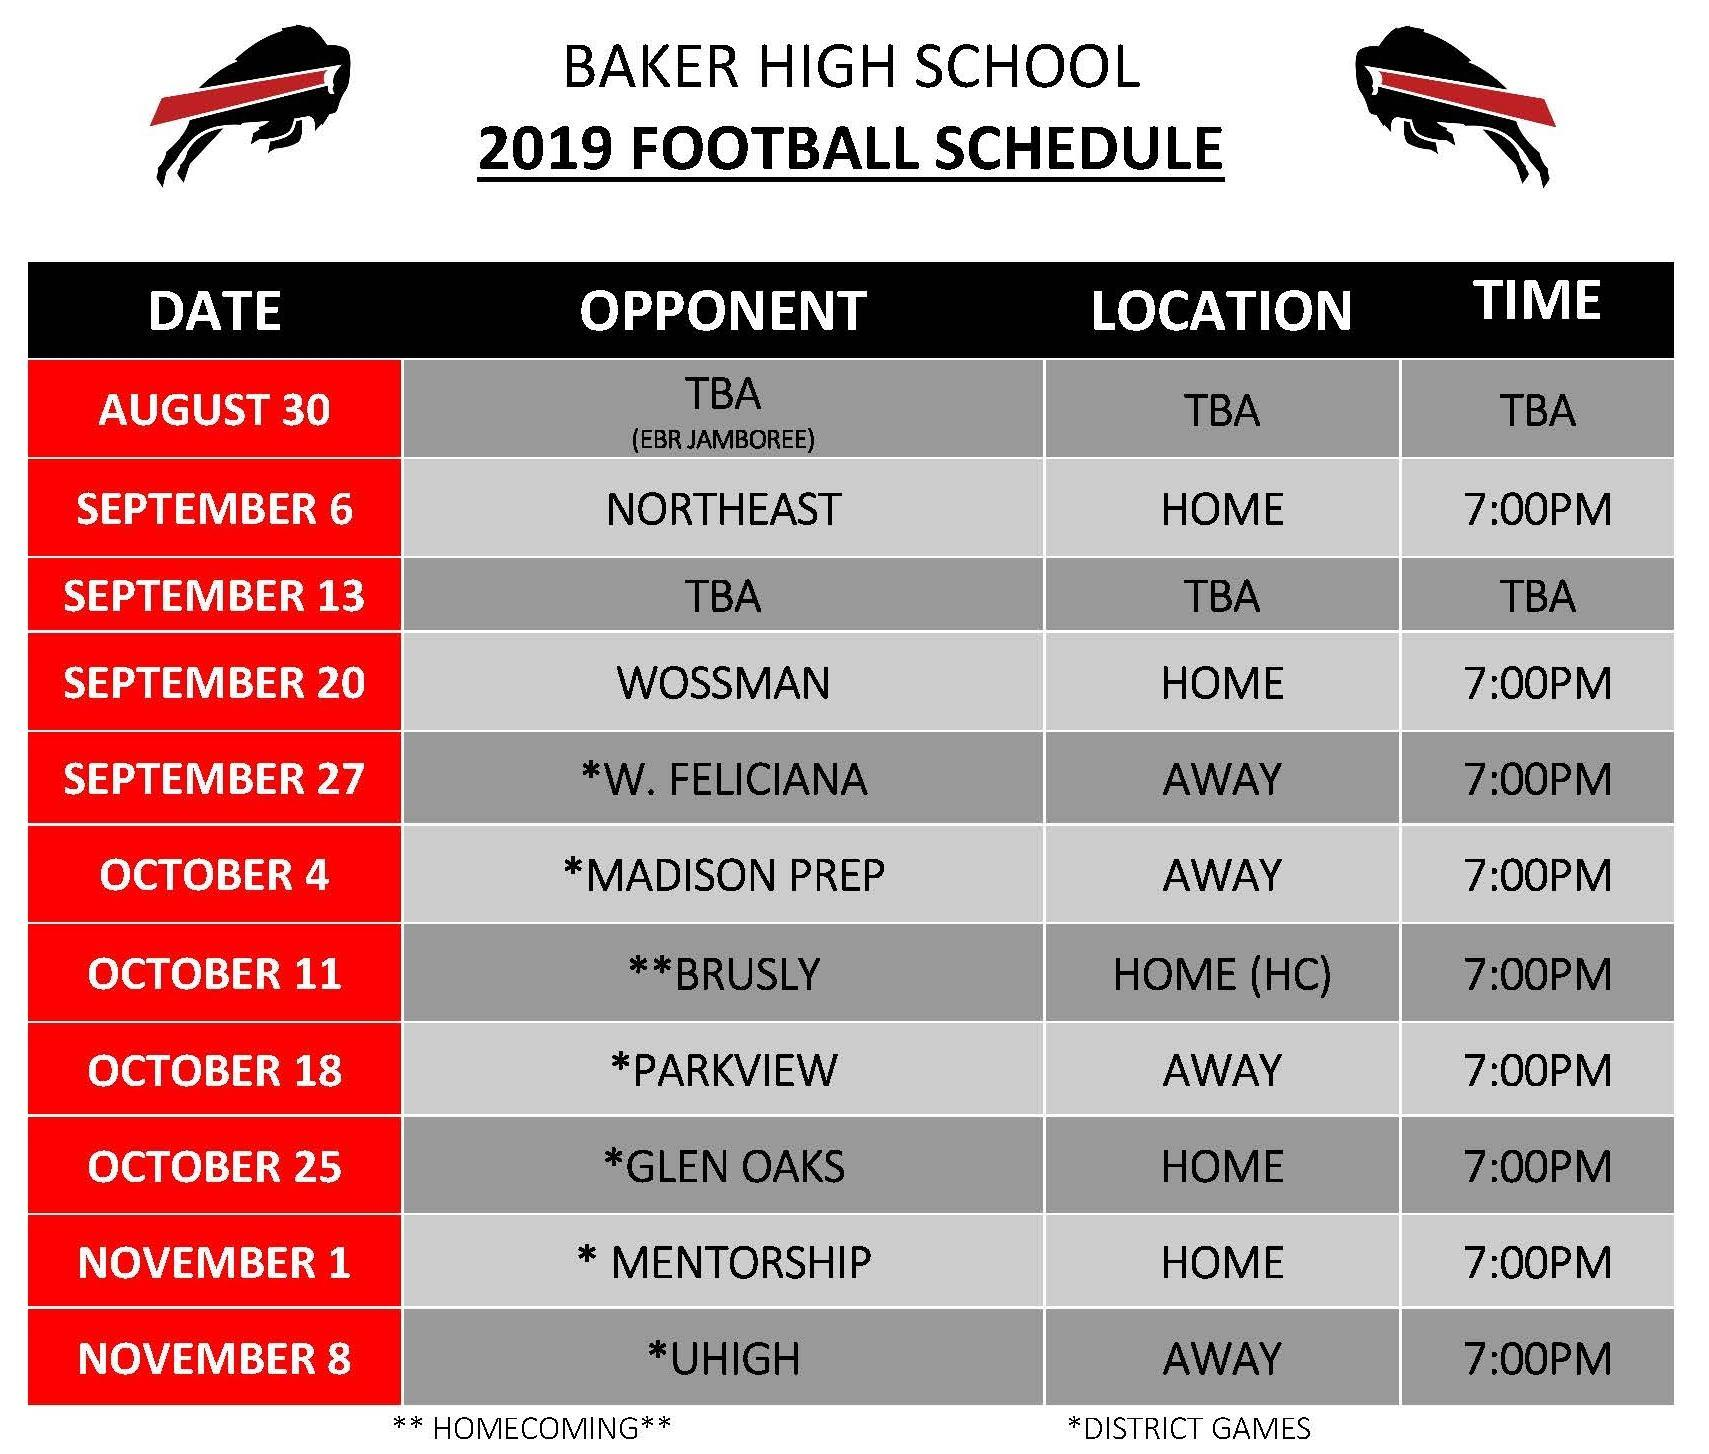 A graphic of the Baker High School 2019 Football Schedule